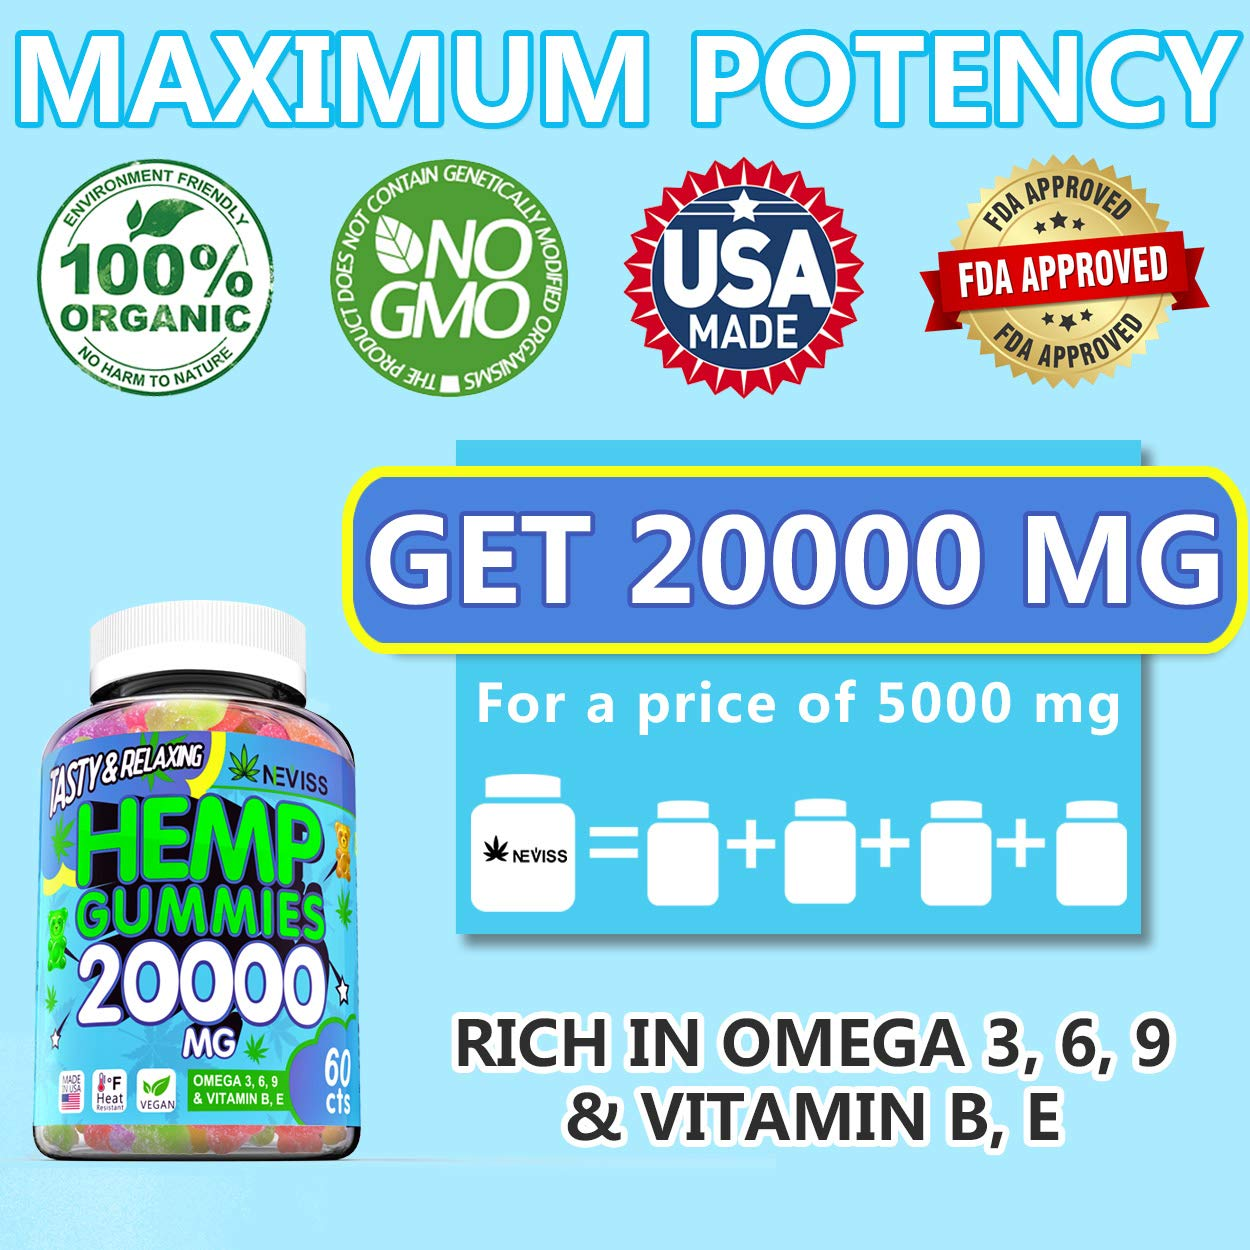 Premium Hémp Gummies 20000 MG - Hémp Gummy Bears Made in USA - Natural Organic Pure Hémp Extract Gummies for Pain, Anxiety & Stress Relief, Sleep, Calm & Immune Support - Rich Vitamins & Omega 3, 6, 9